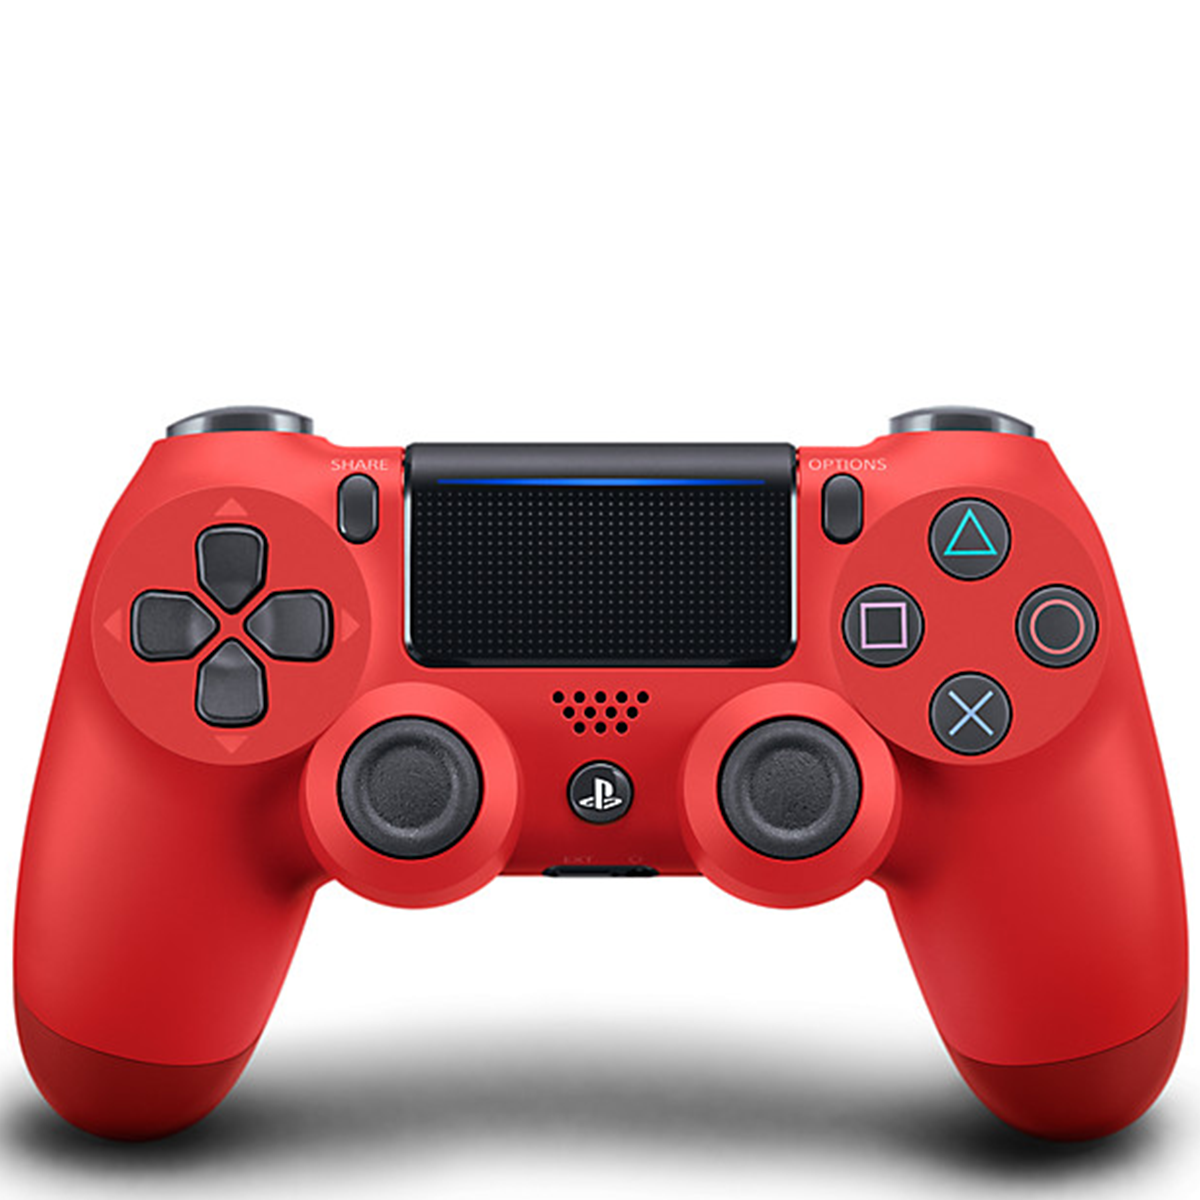 Tay cầm Sony PS4 Dualshock Red